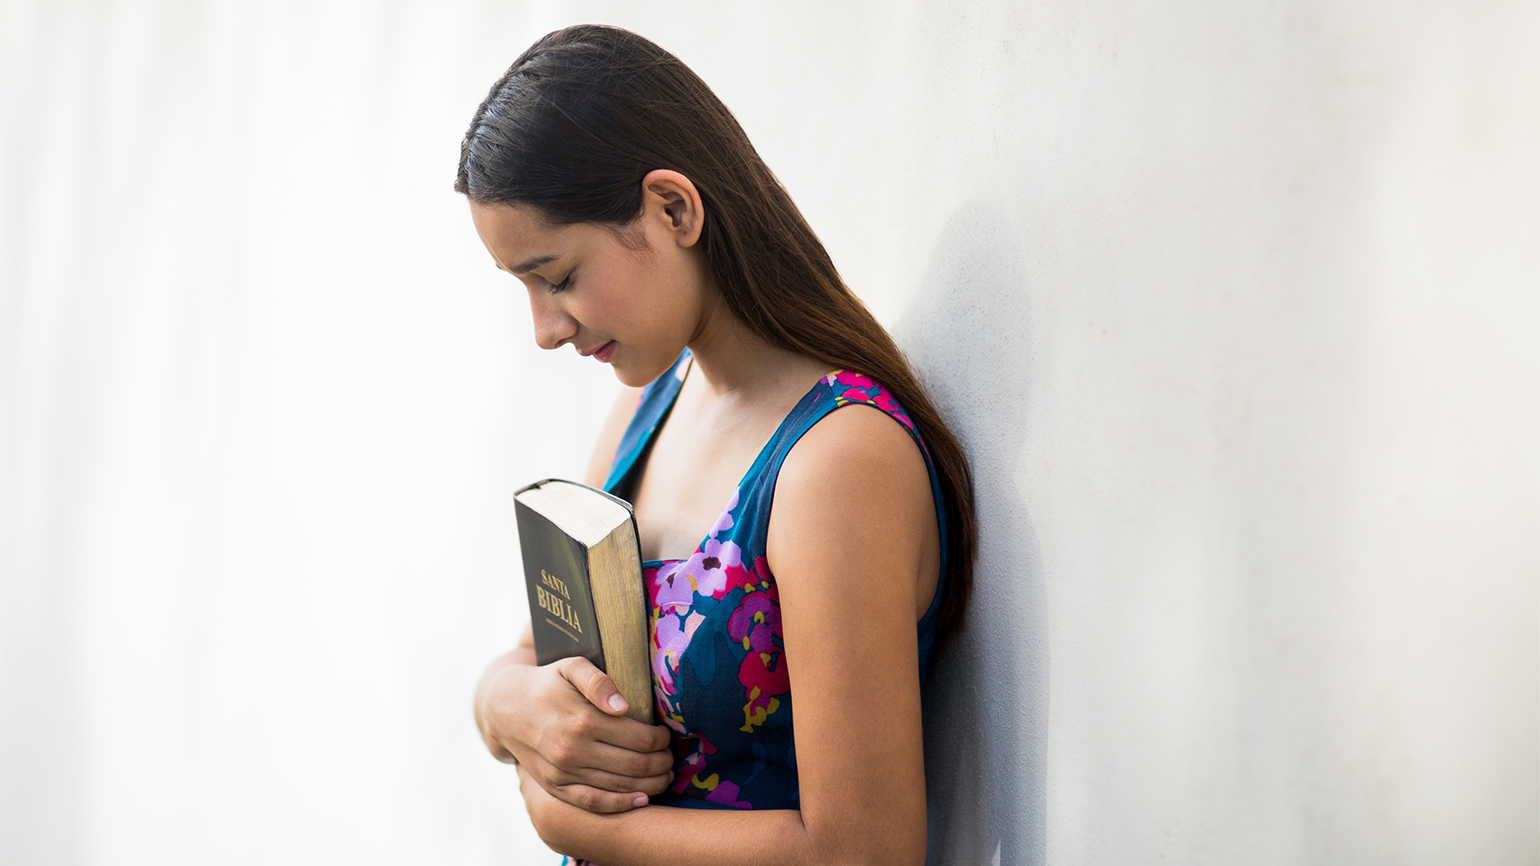 Youhng woman with Bible